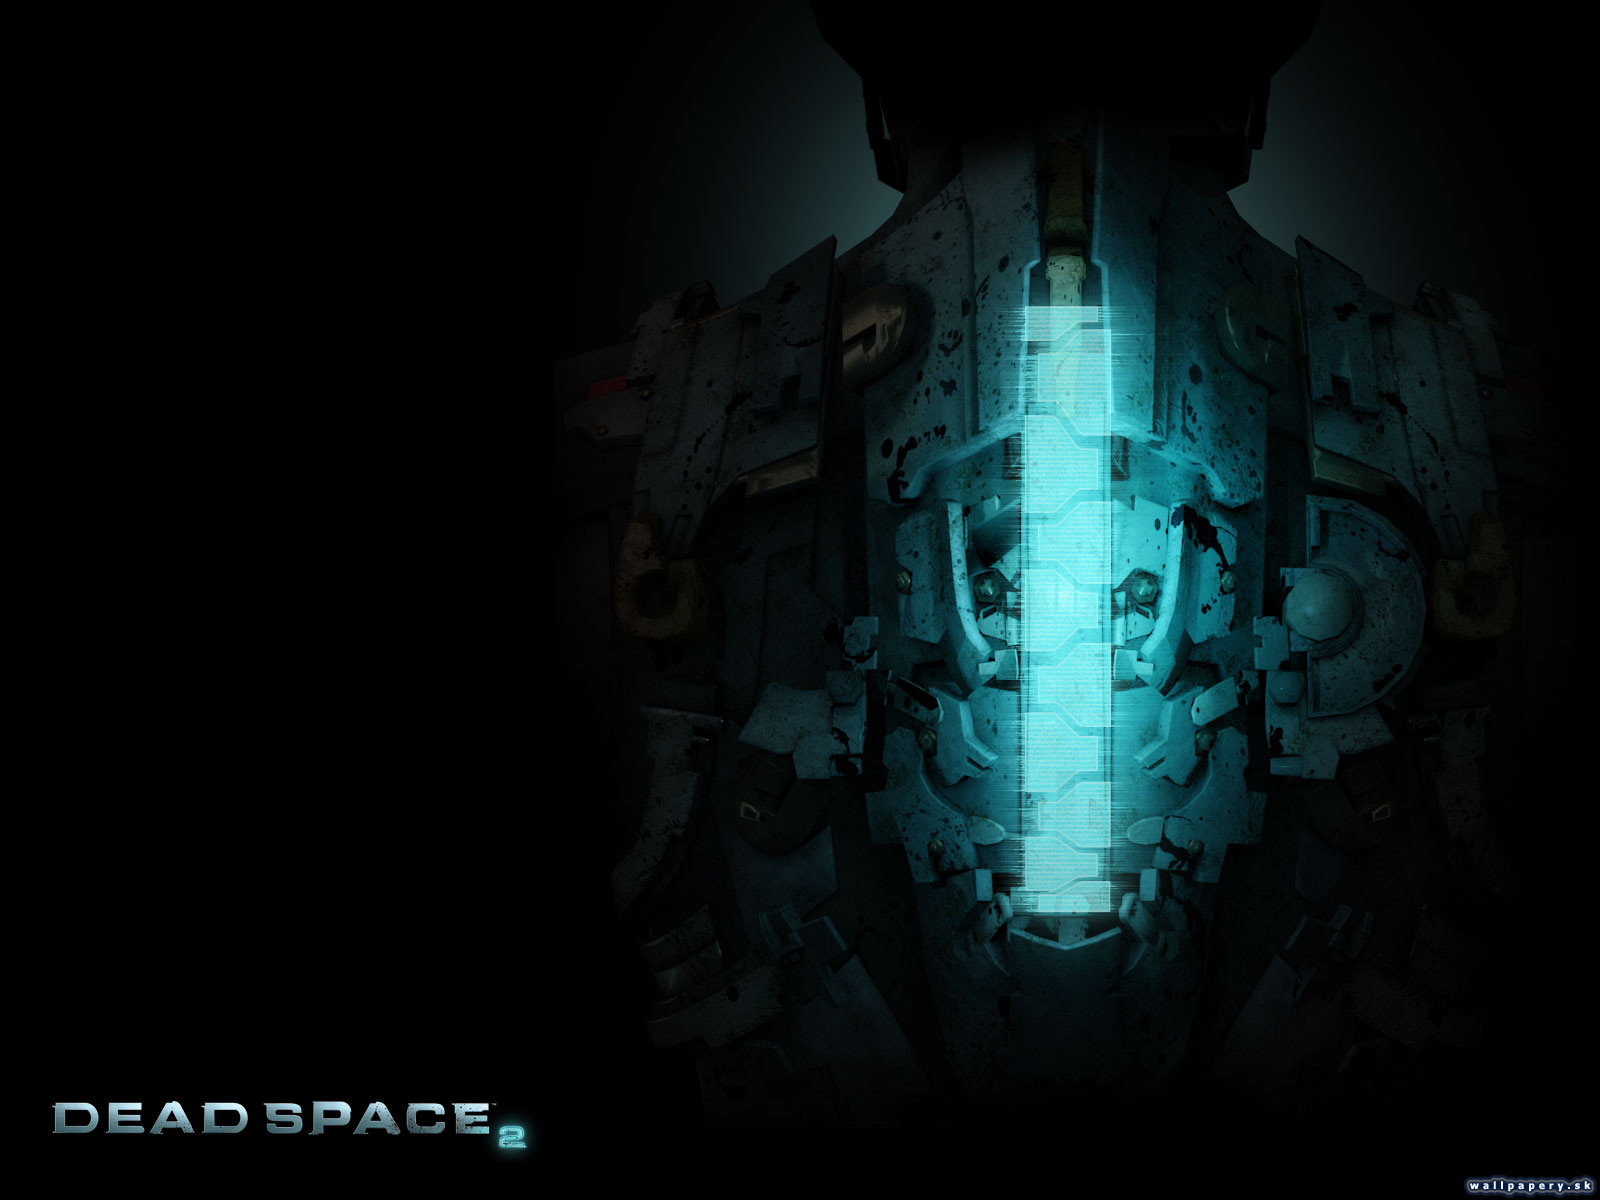 Dead Space 2 - wallpaper 3